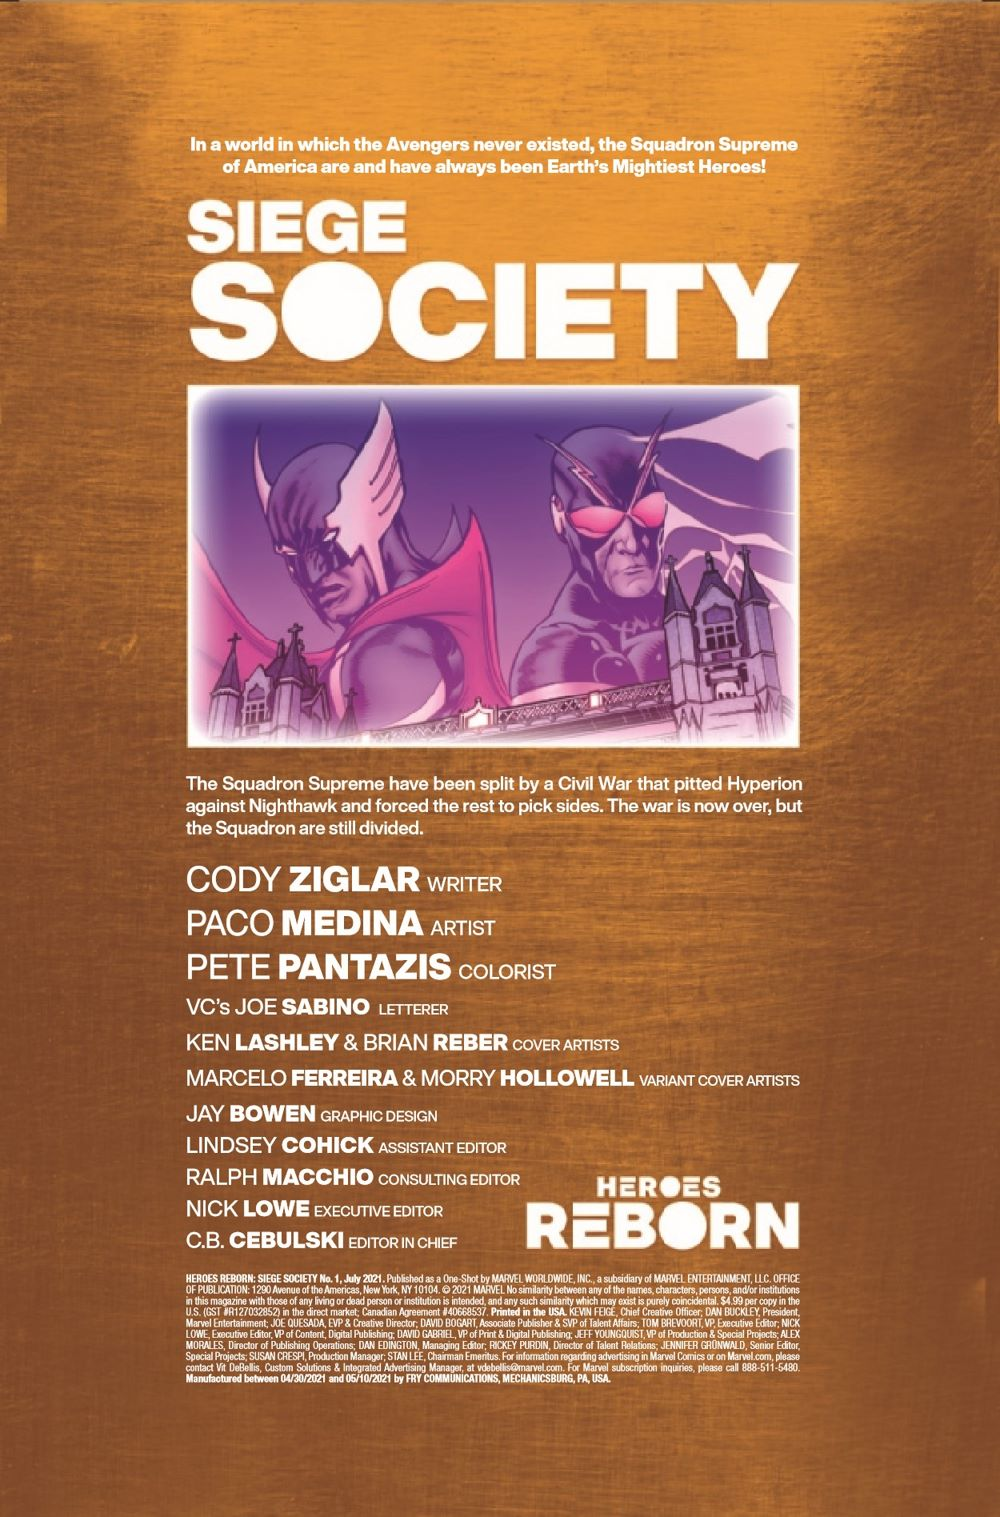 HRSIEGESOCIETY2021001_Preview-2 ComicList Previews: HEROES REBORN SIEGE SOCIETY #1